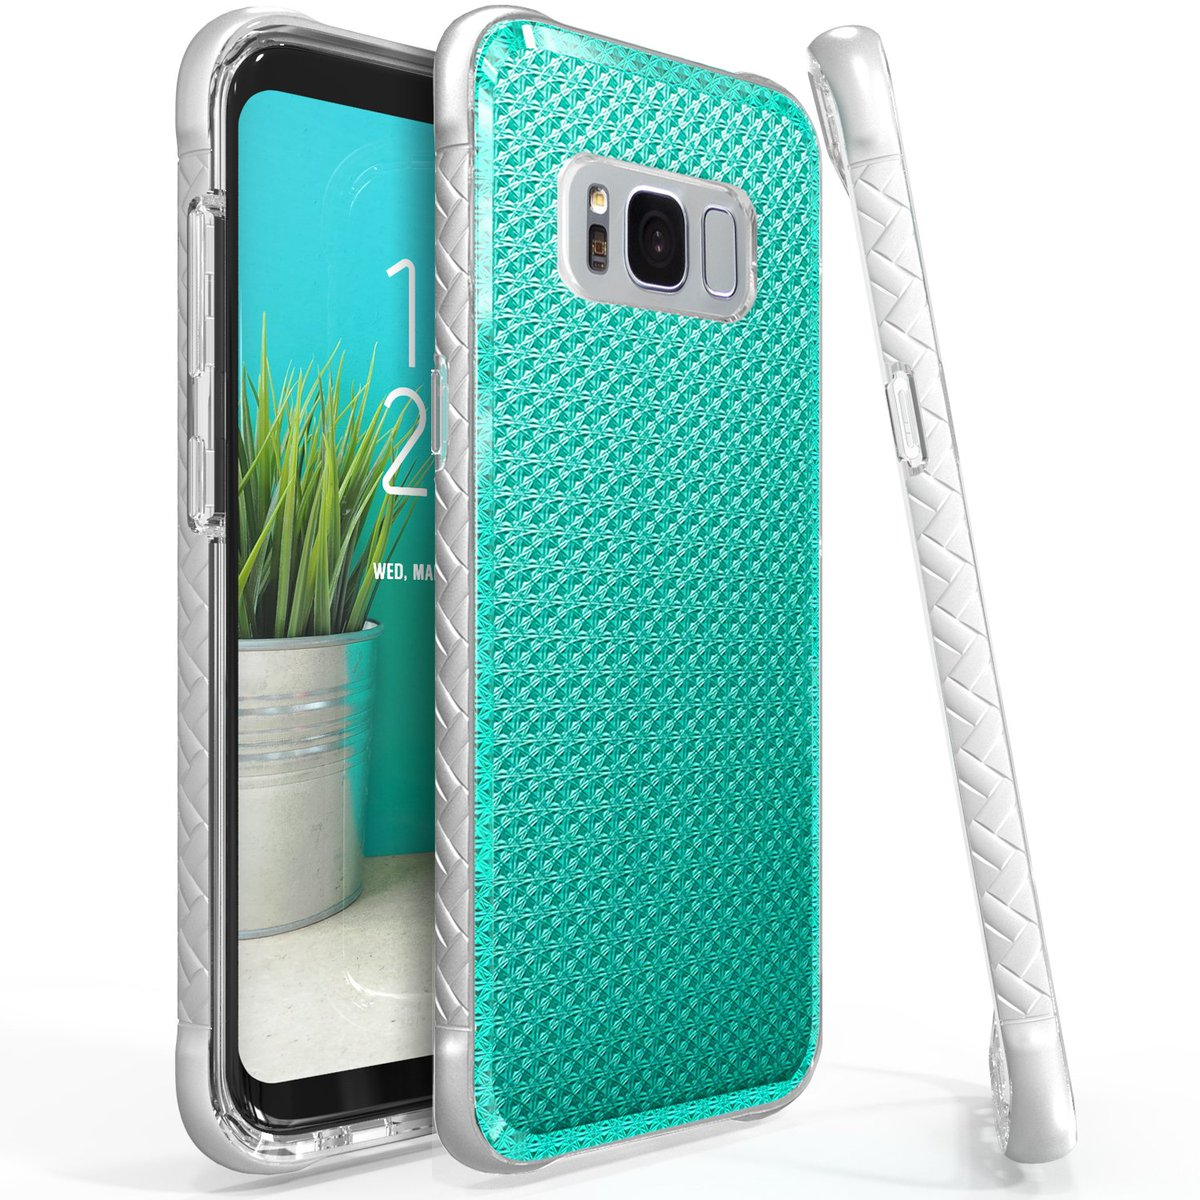 Scottii Samsung Galaxy S8 Plus Case, [Blue] Slim & Flexible Anti-shock Crystal Silicone Protective TPU Case